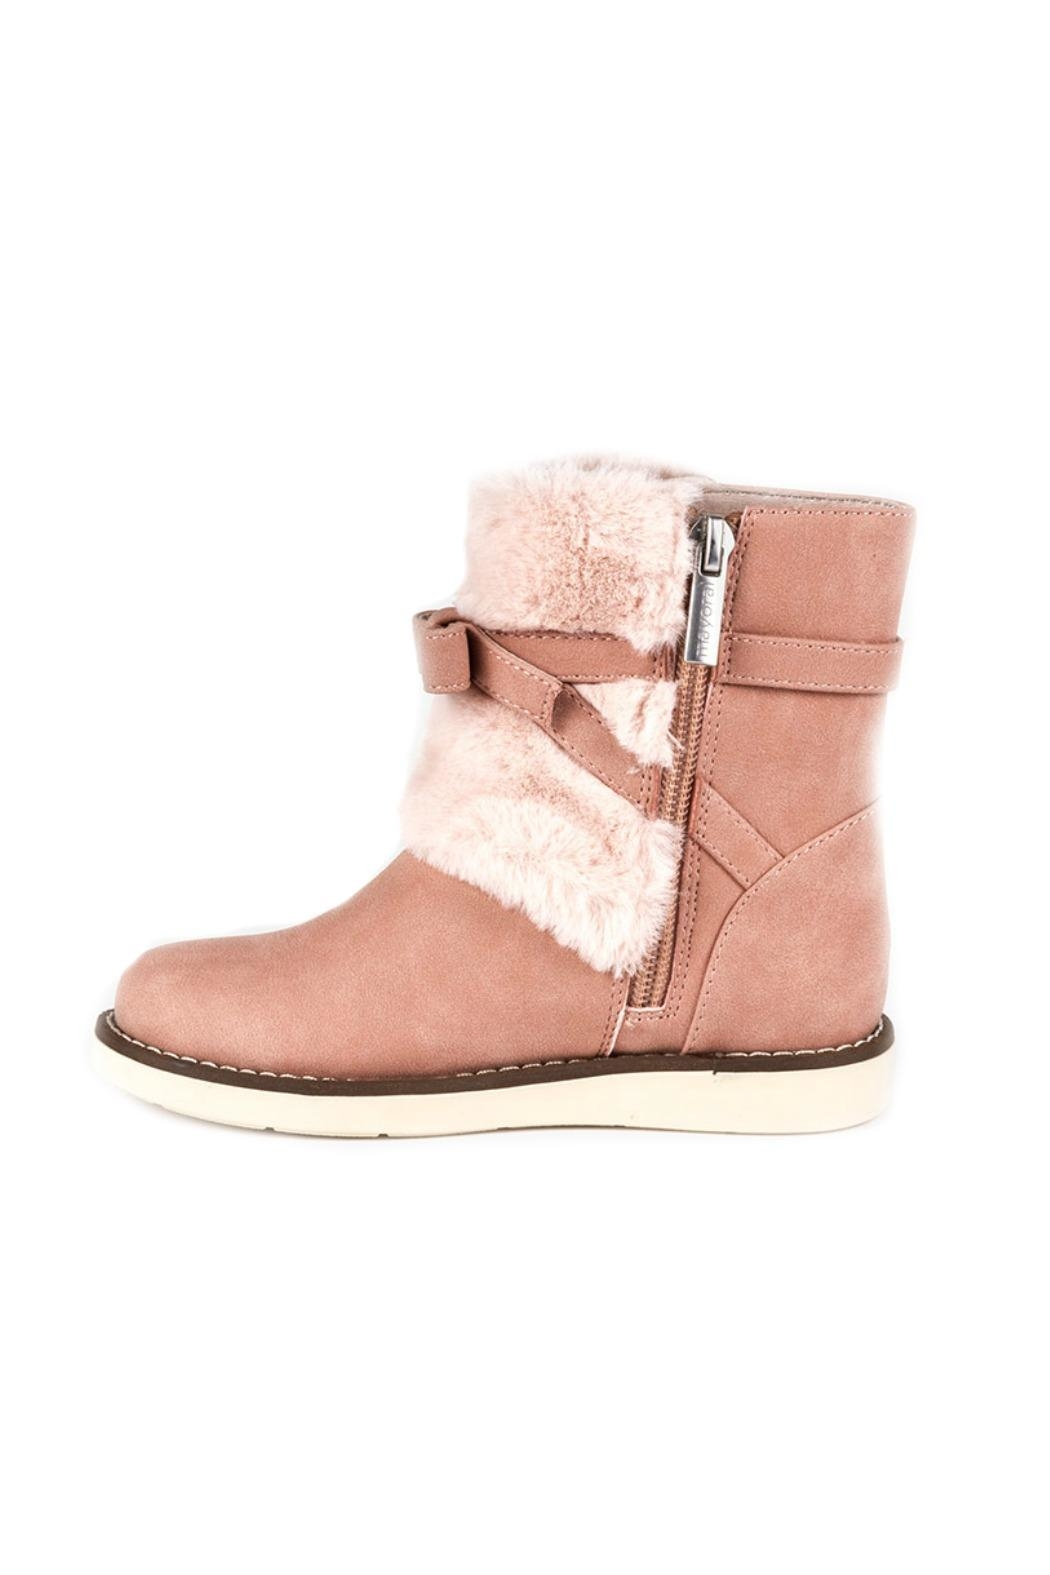 Mayoral Ankle-Boots-In-Pink-With-Faux-Fur-Detailing - Side Cropped Image